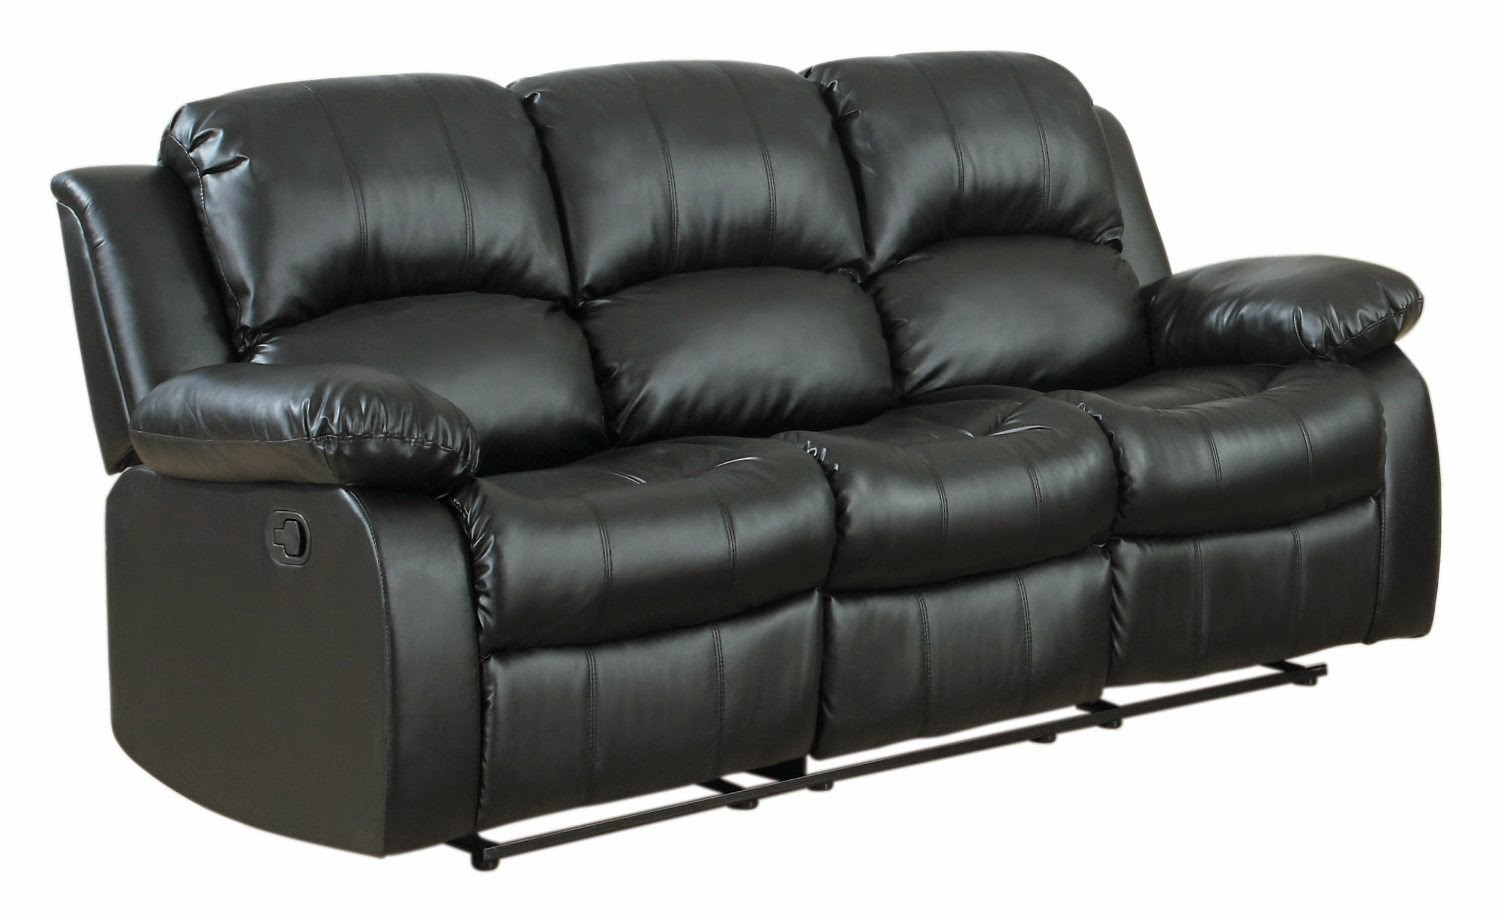 Cheap recliner sofas for sale black leather reclining sofa and loveseat Reclining loveseat sale